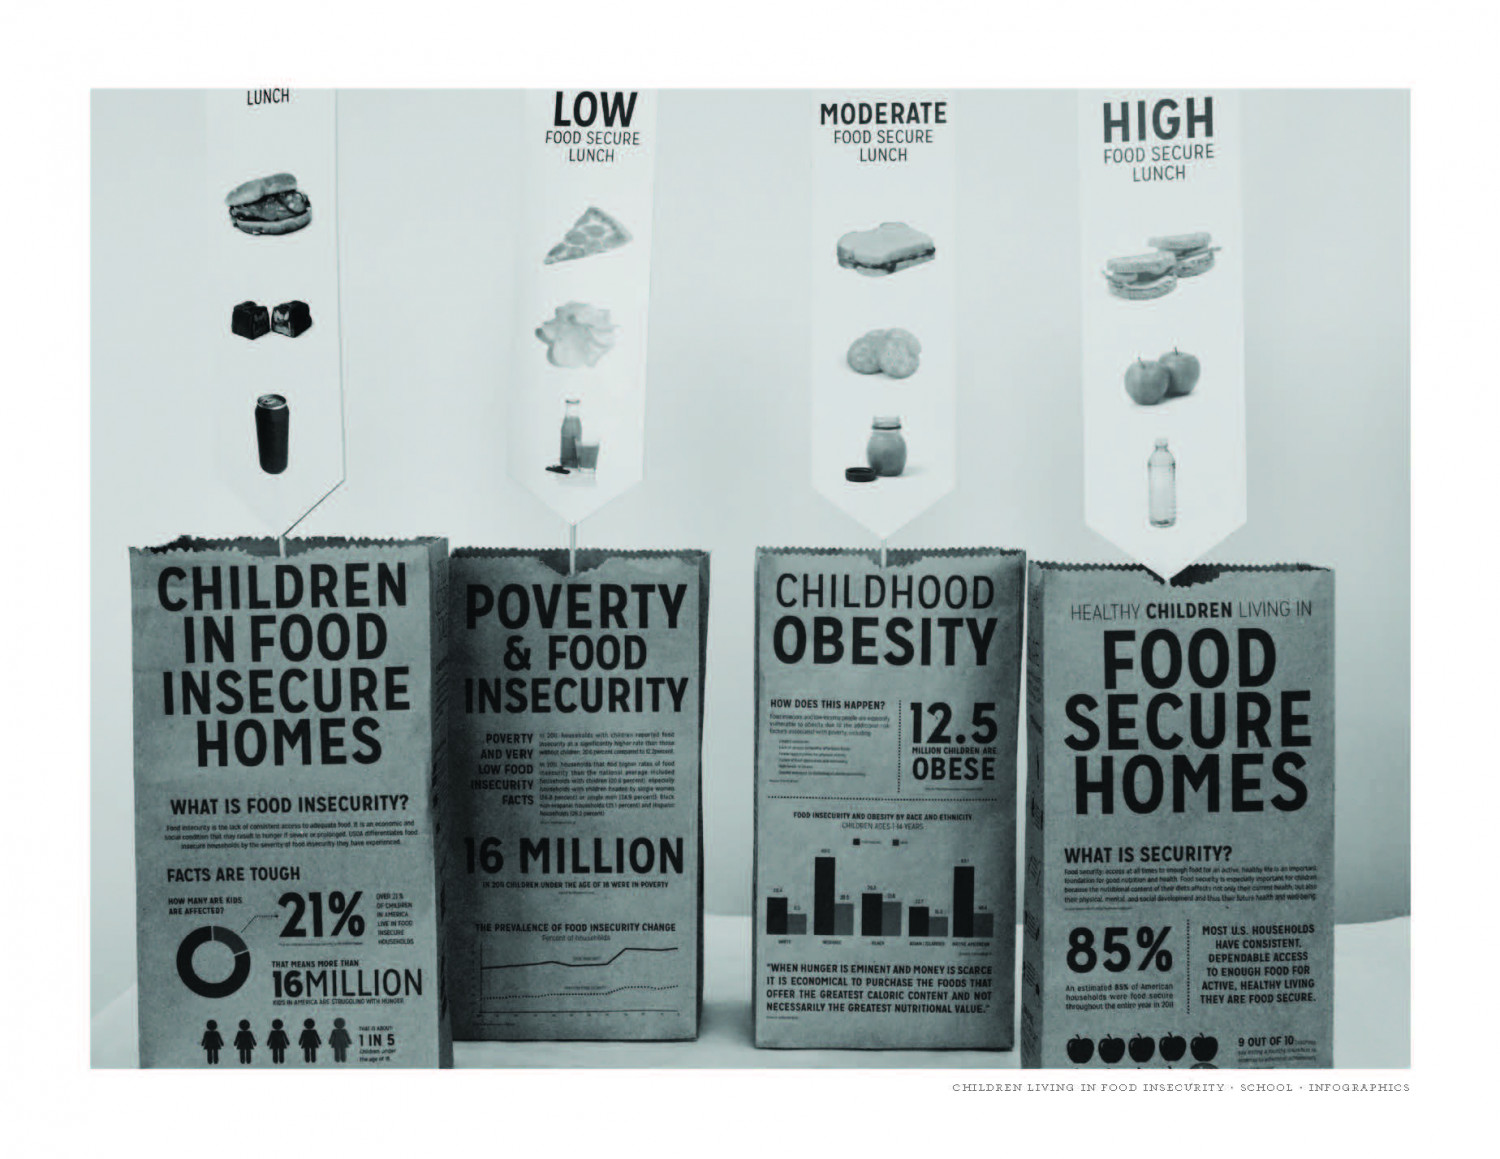 Children in Food Insecure Homes Infographic